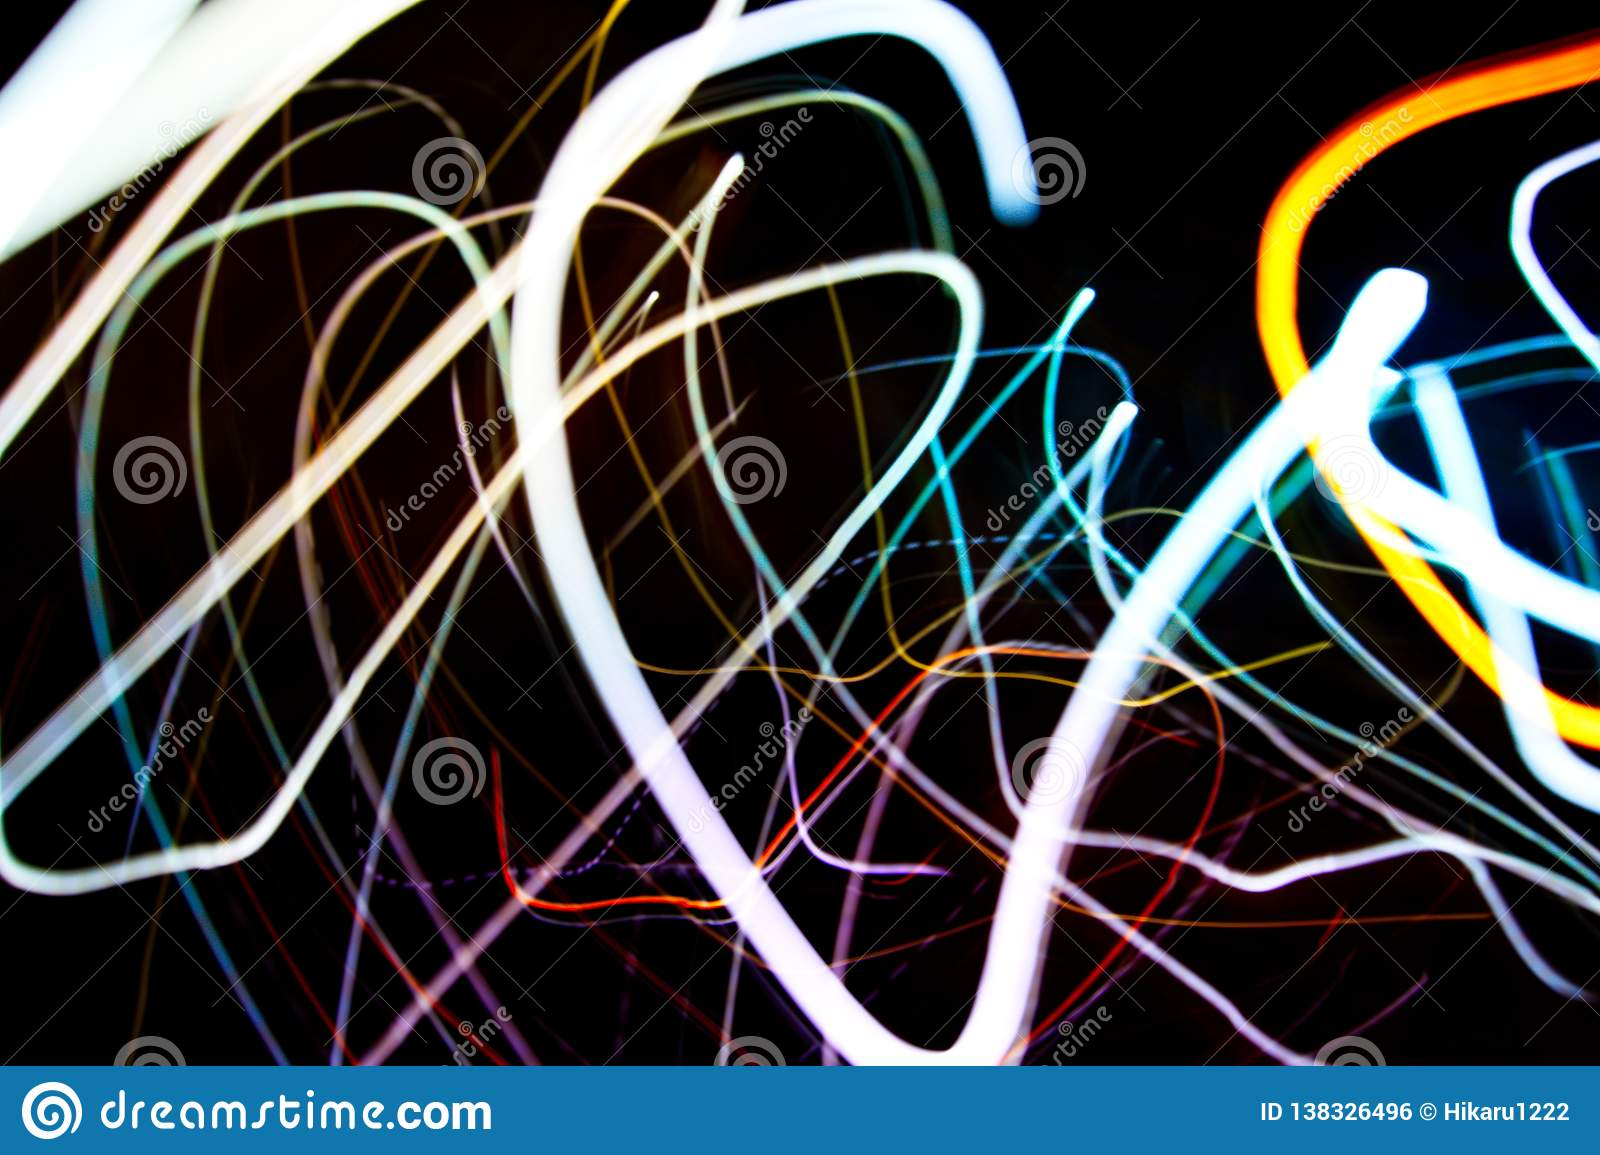 Holiday Lights In Abstract Slow Shutter >> Abstract Beautiful Light Painting Photography Waves Abstract Light